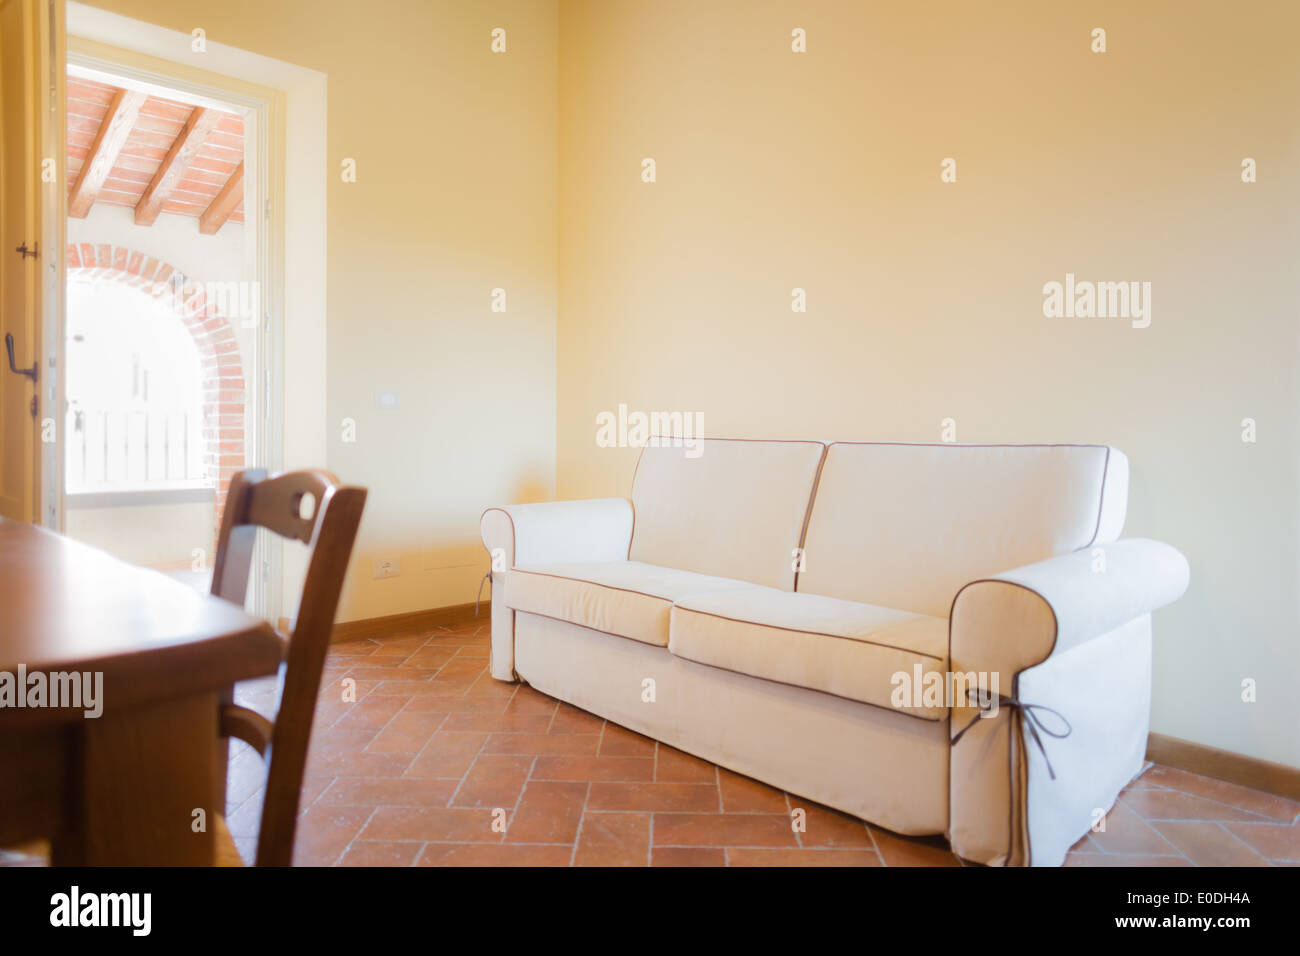 A Warm An Cozy Living Room With A Cream Colored Sofa Stock Photo